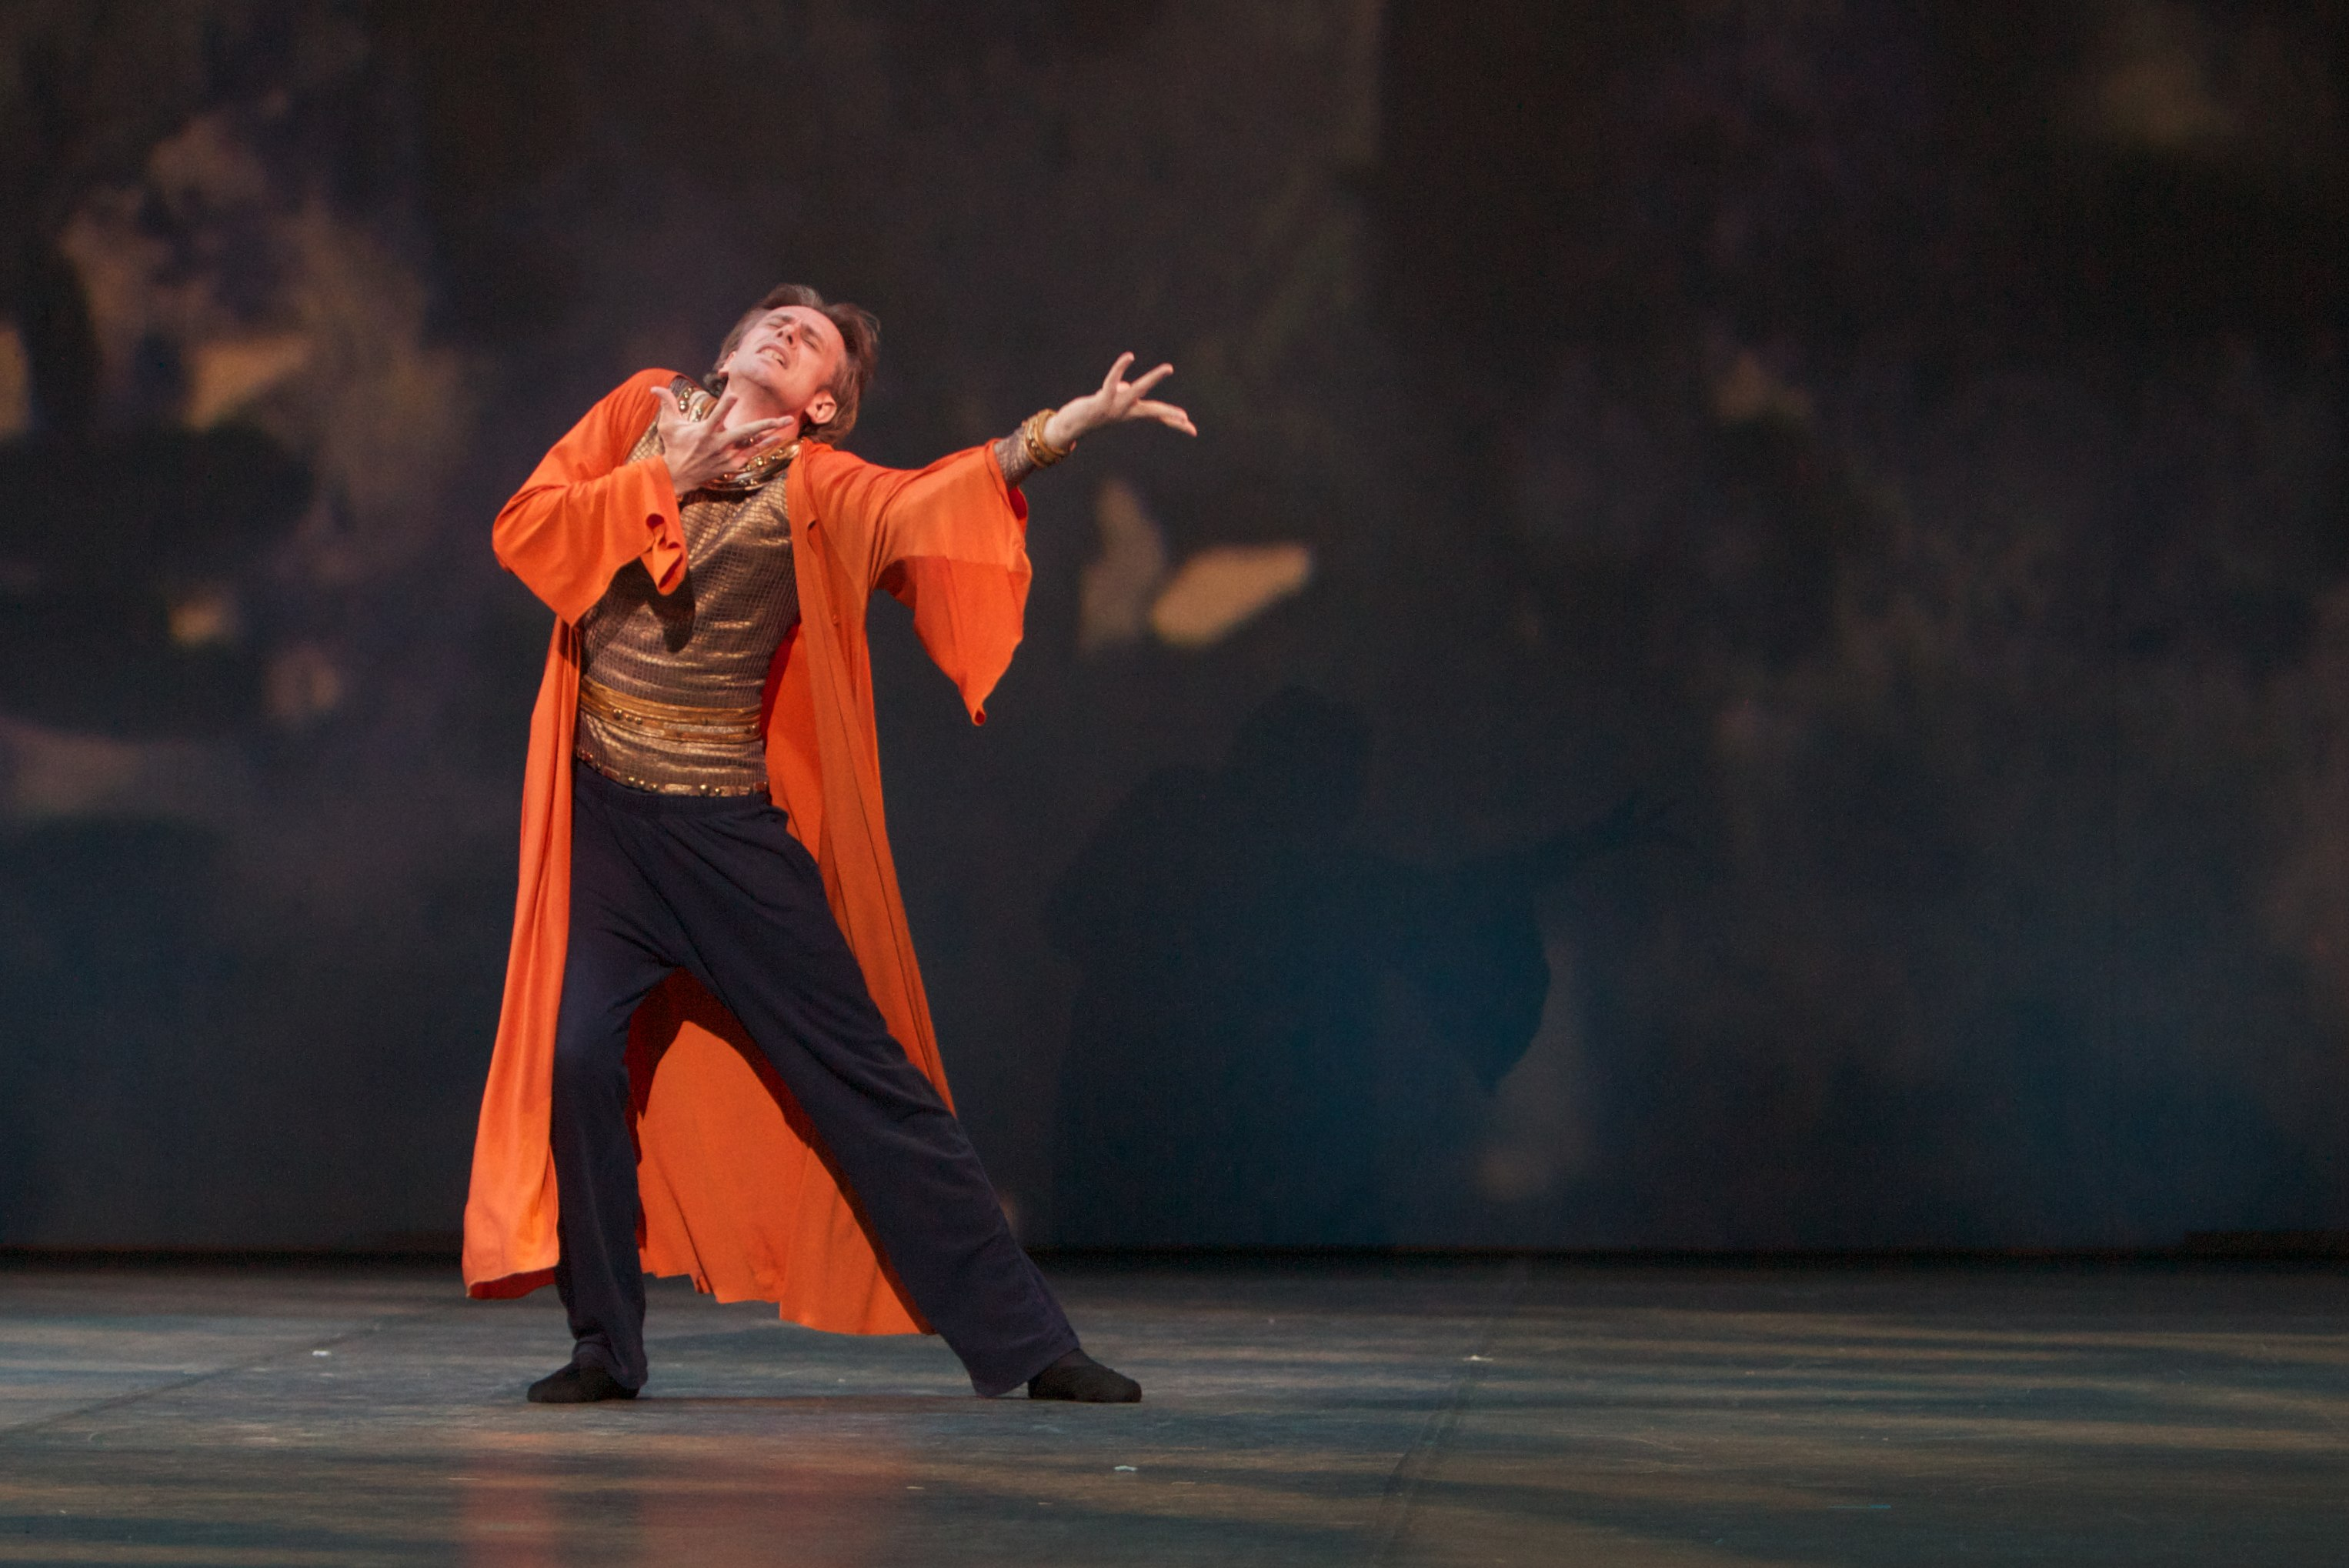 dancer in an orange cloak stands on stage